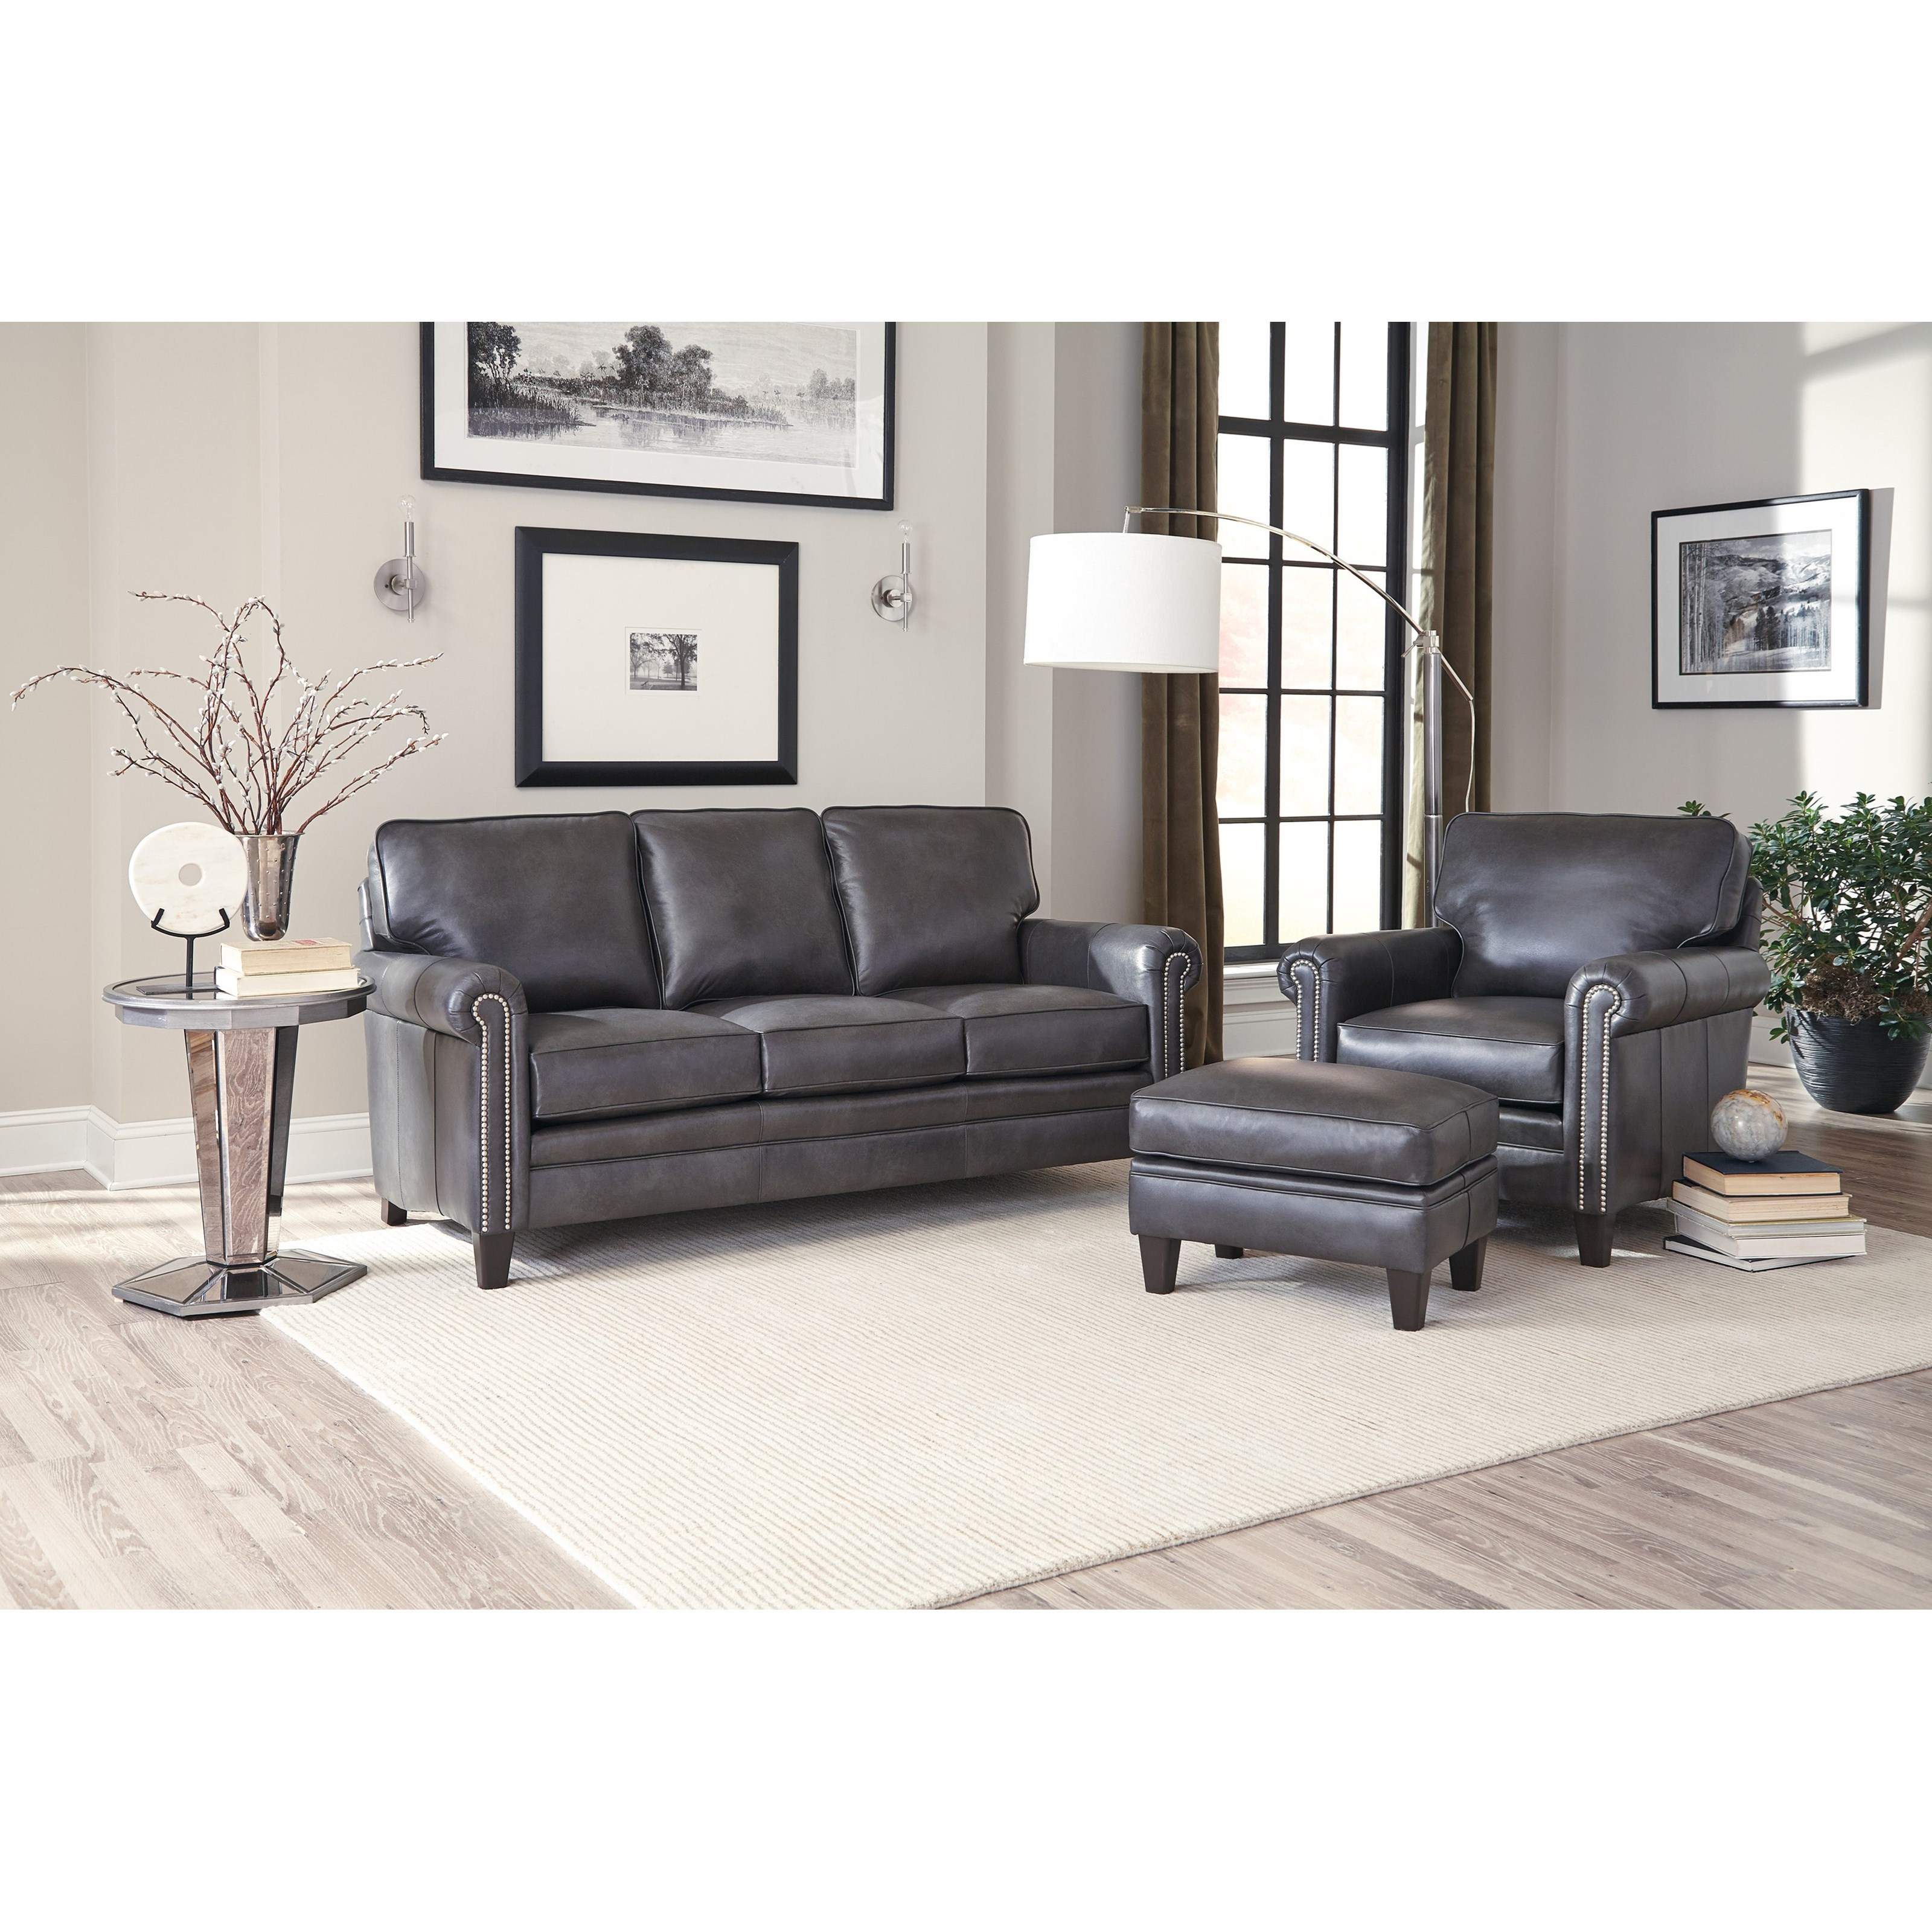 234 Stationary Living Room Group by Smith Brothers at Pilgrim Furniture City